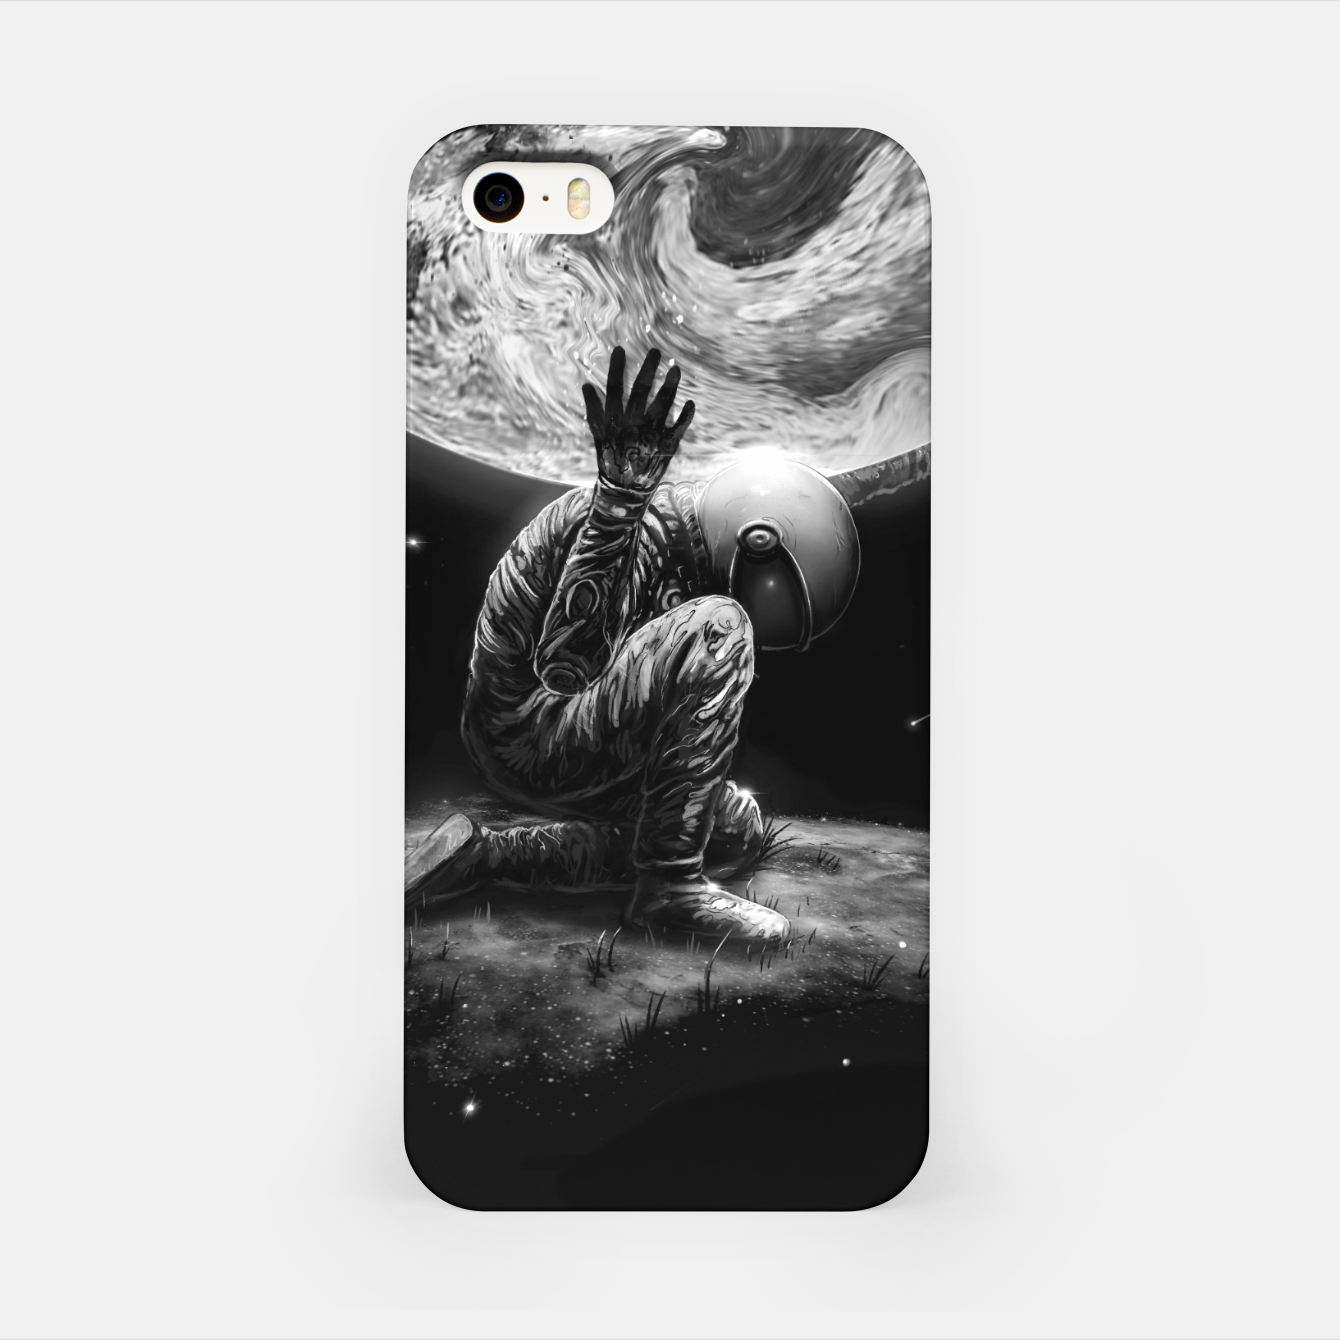 Image of Atlas iPhone Case - Live Heroes